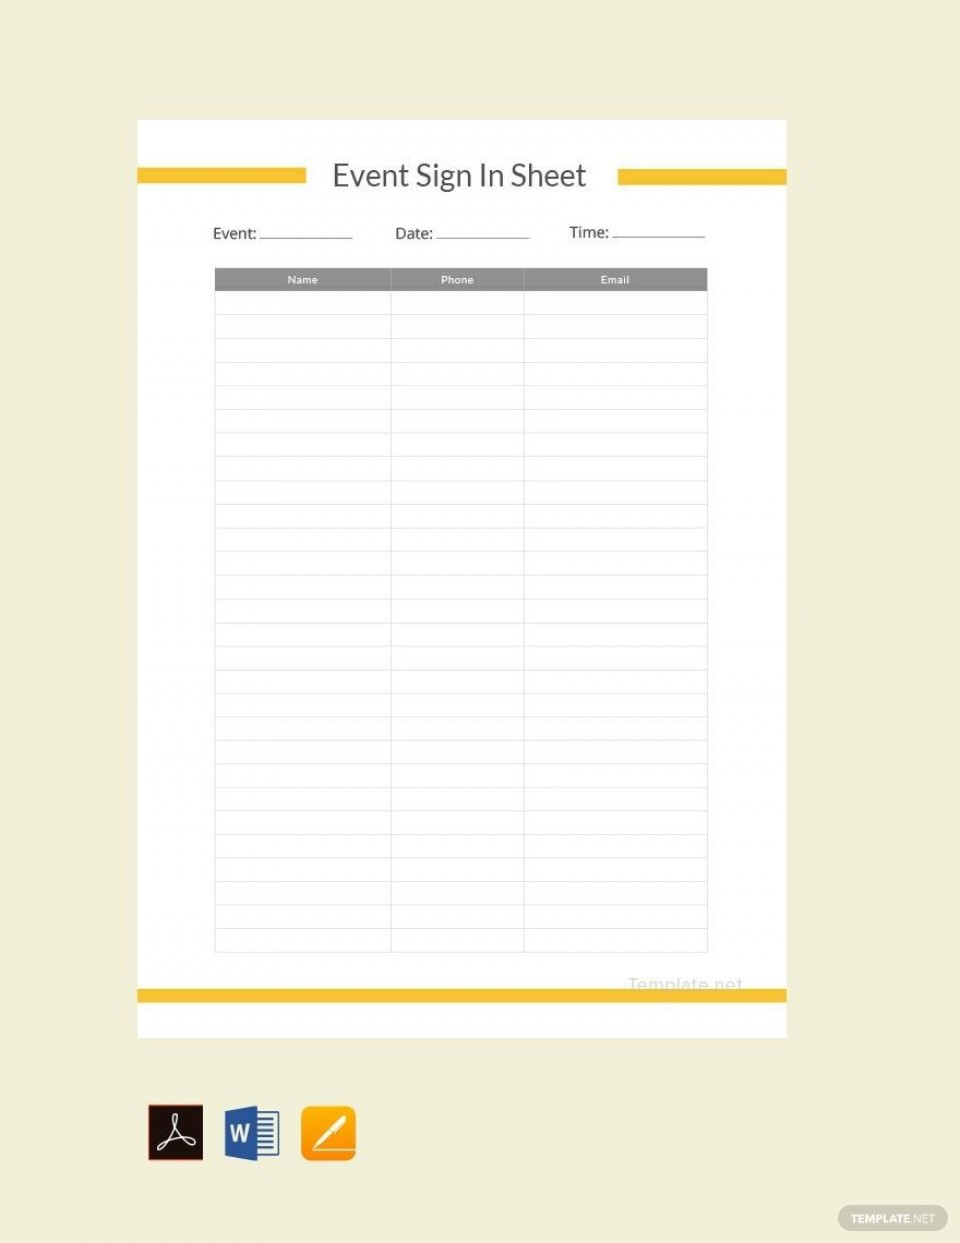 000 Awful Sign In Sheet Template Doc High Def  For Doctor Office Up Google Sample960